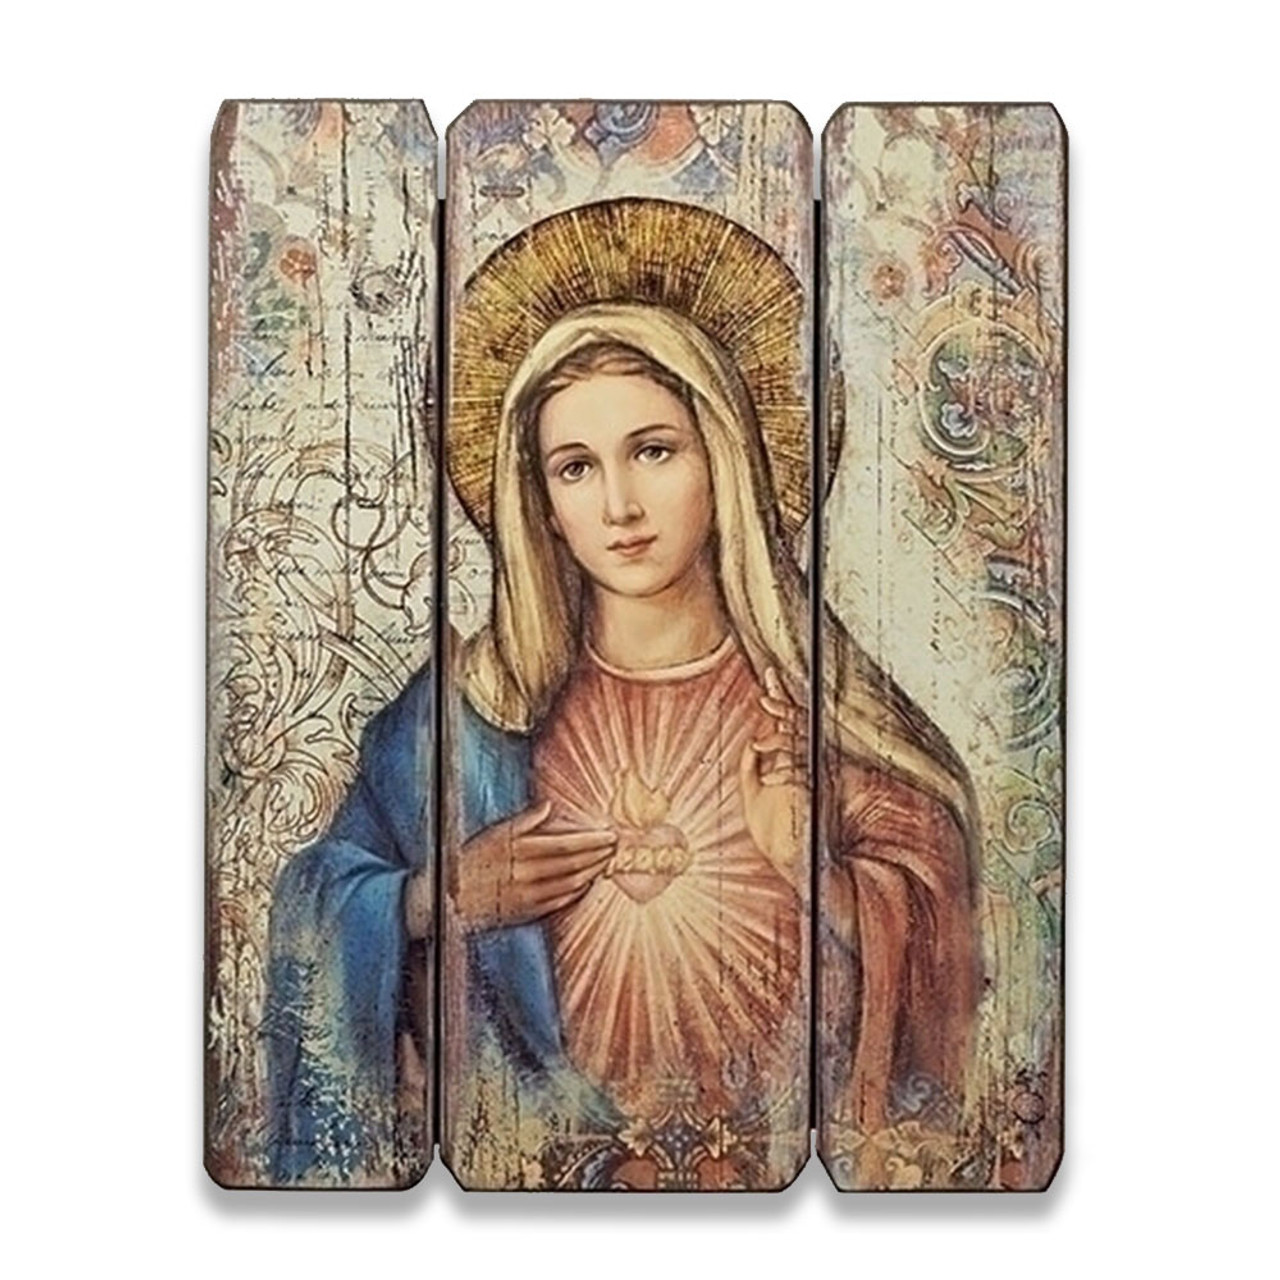 Immaculate Heart of Mary Panel Art 15IN High